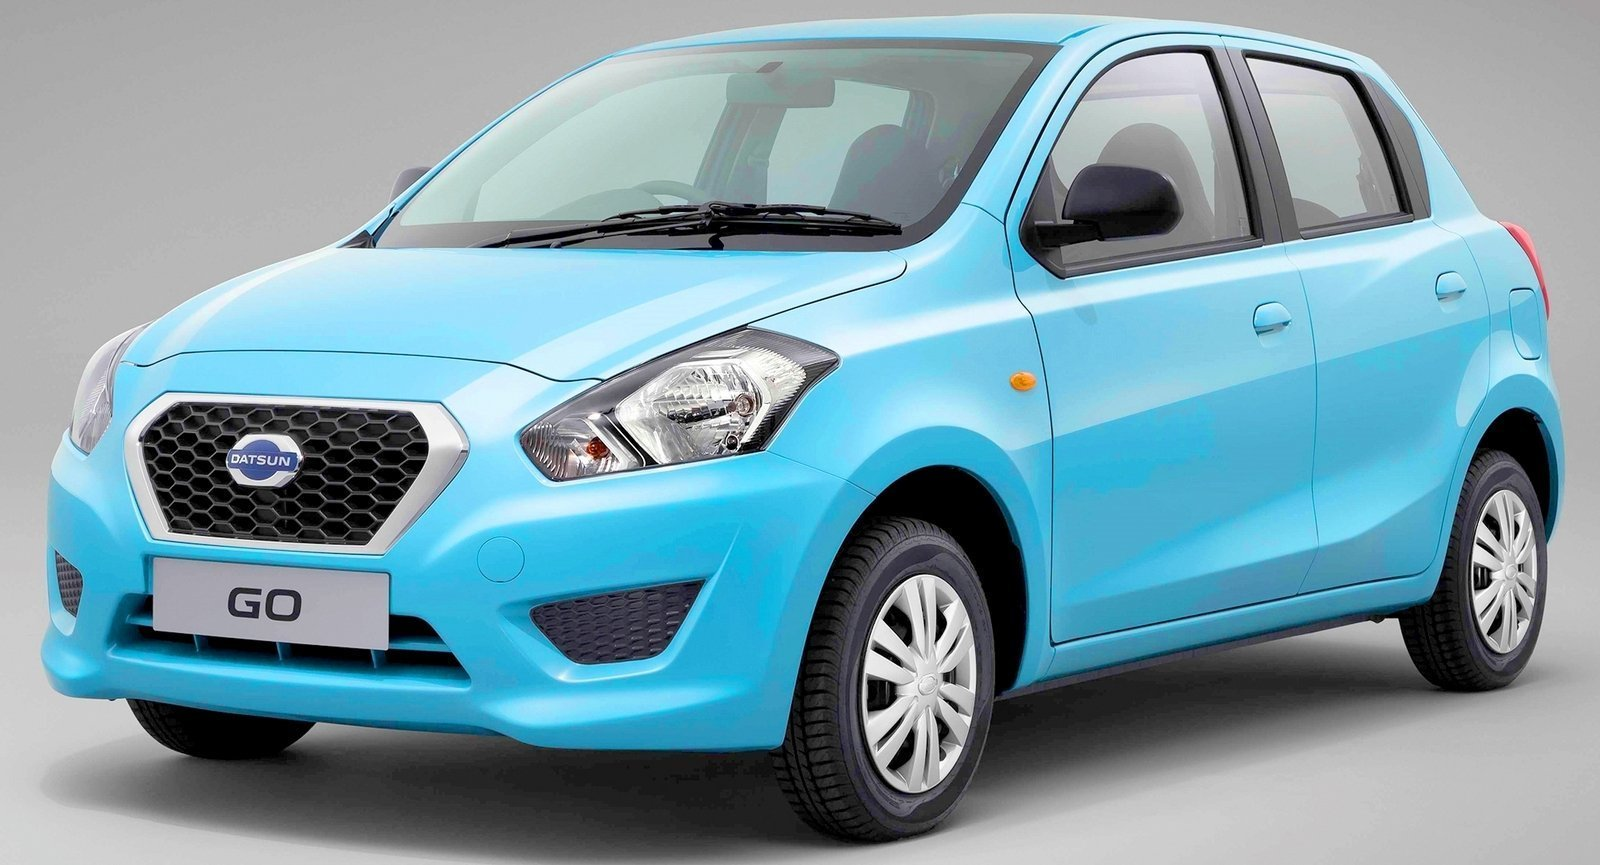 New 2014 Datsun Go Top Speed On This Month